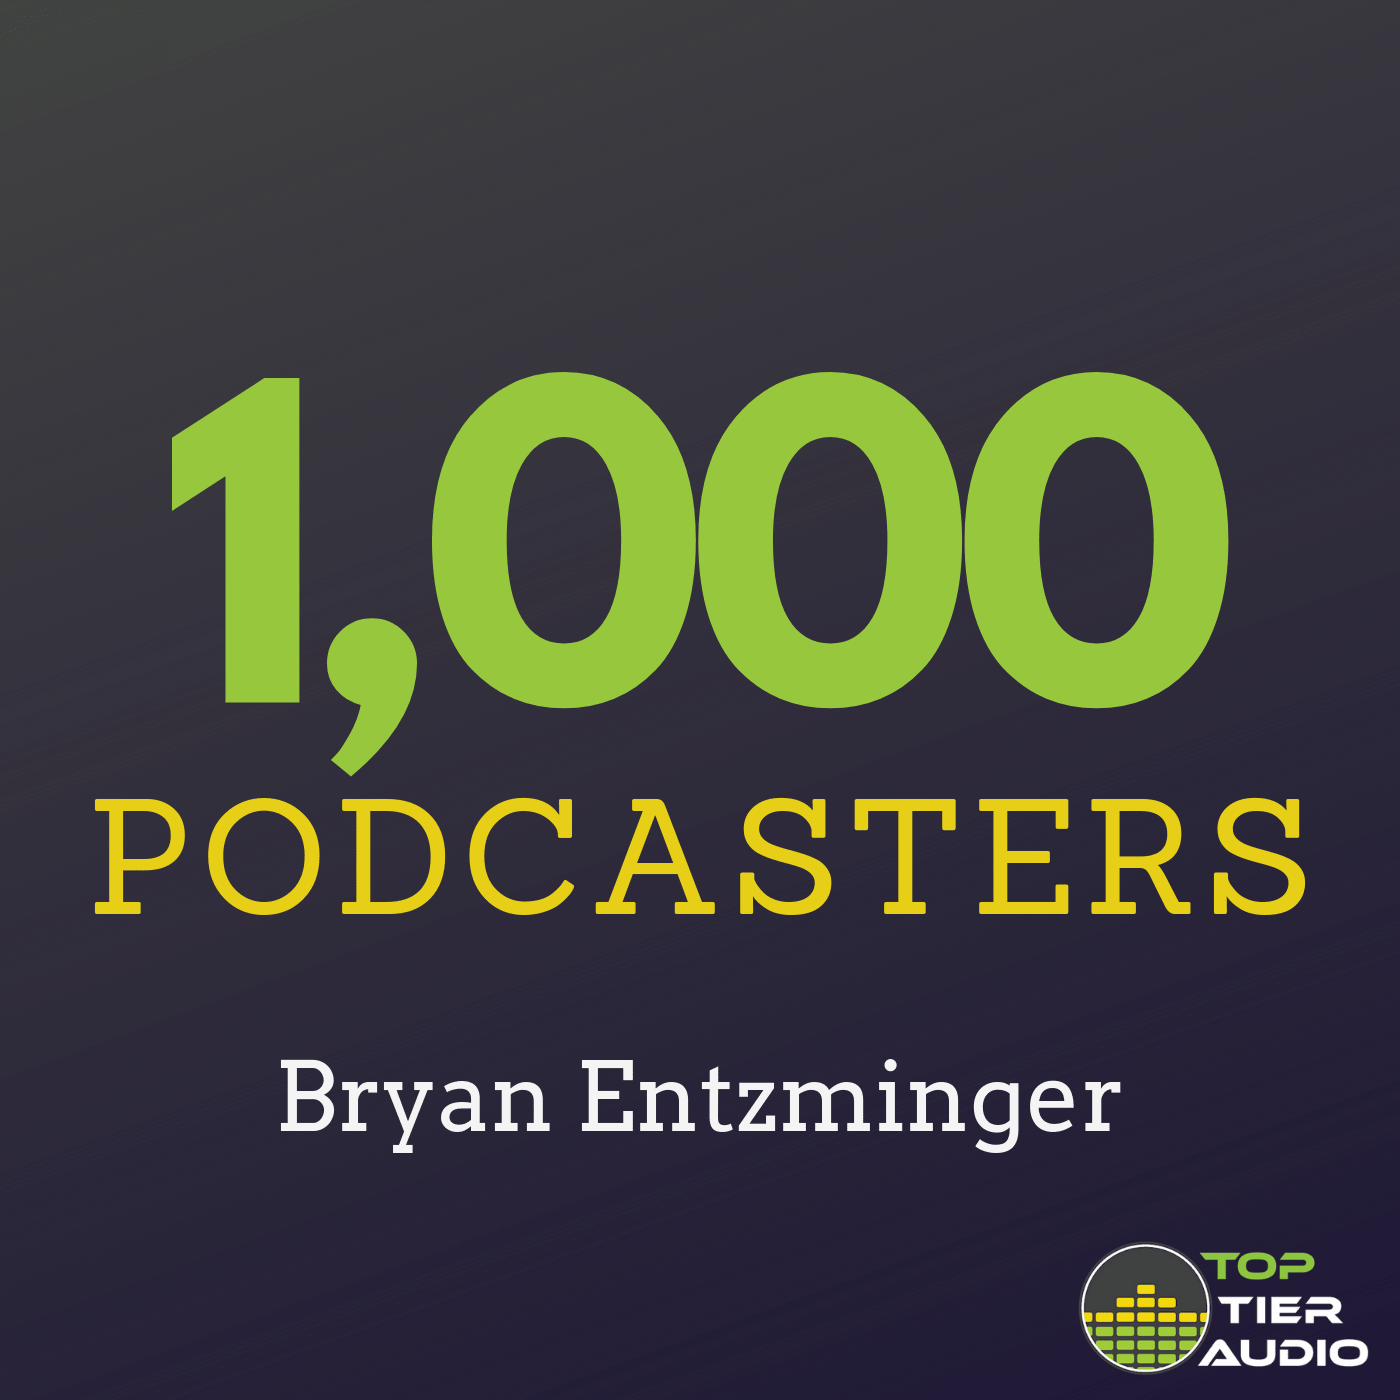 What I achieved through podcasting in 2019